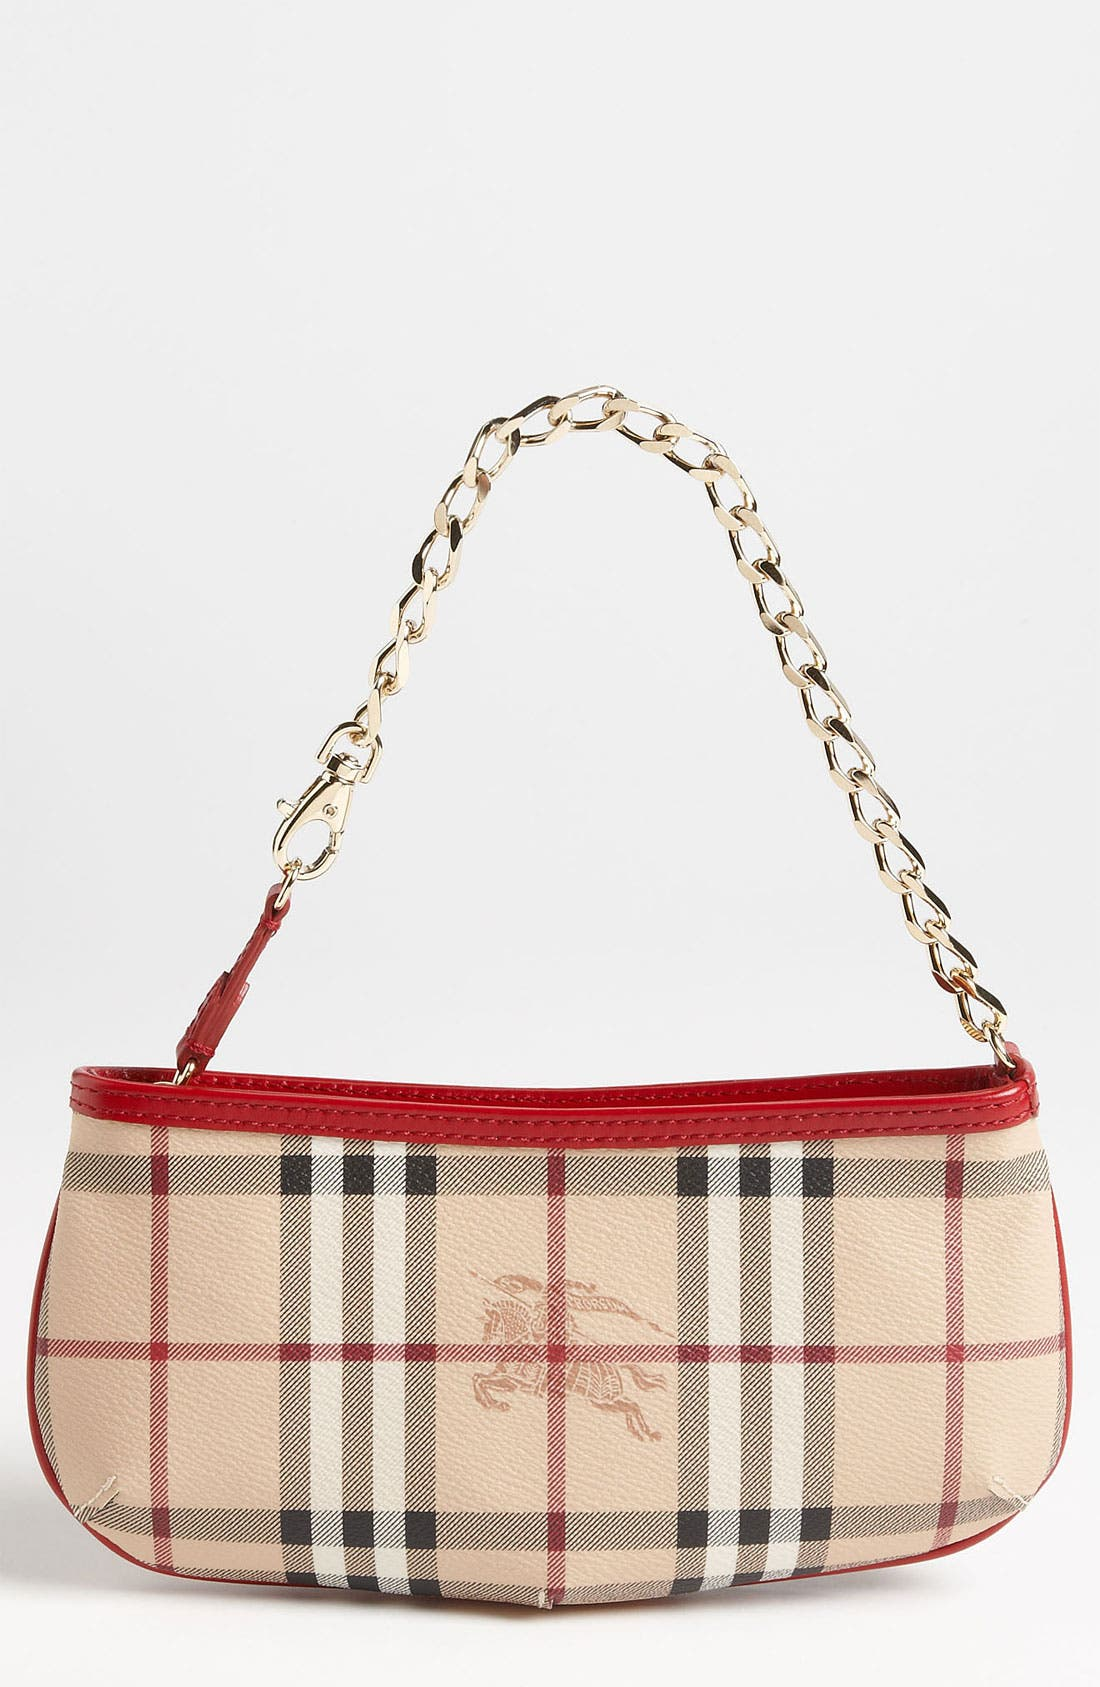 Main Image - Burberry 'Haymarket Color' Pouch